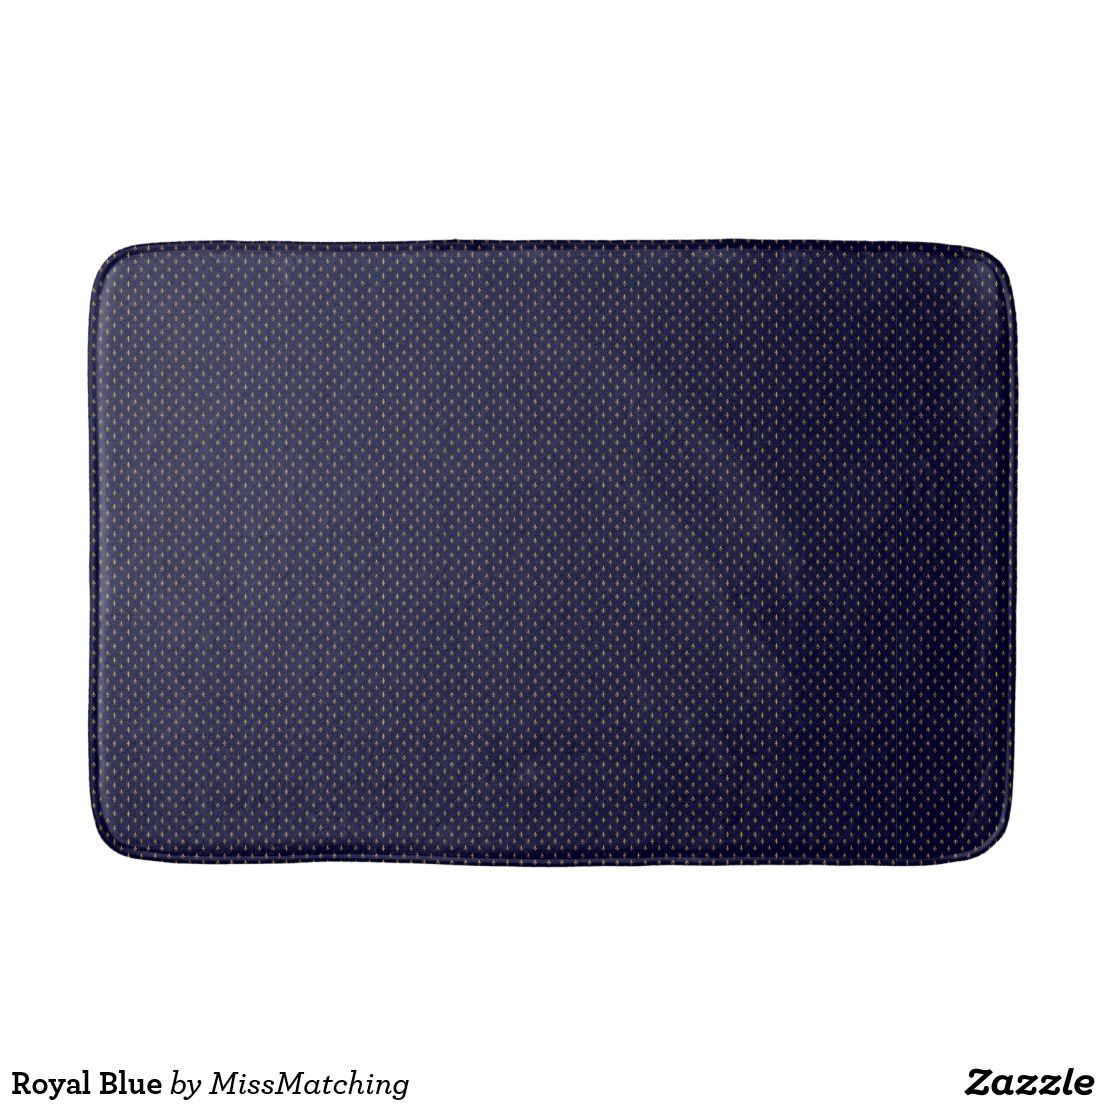 Royal Blue Bath Mats Bathroom Decor Pinterest - Blue bath mat for bathroom decorating ideas